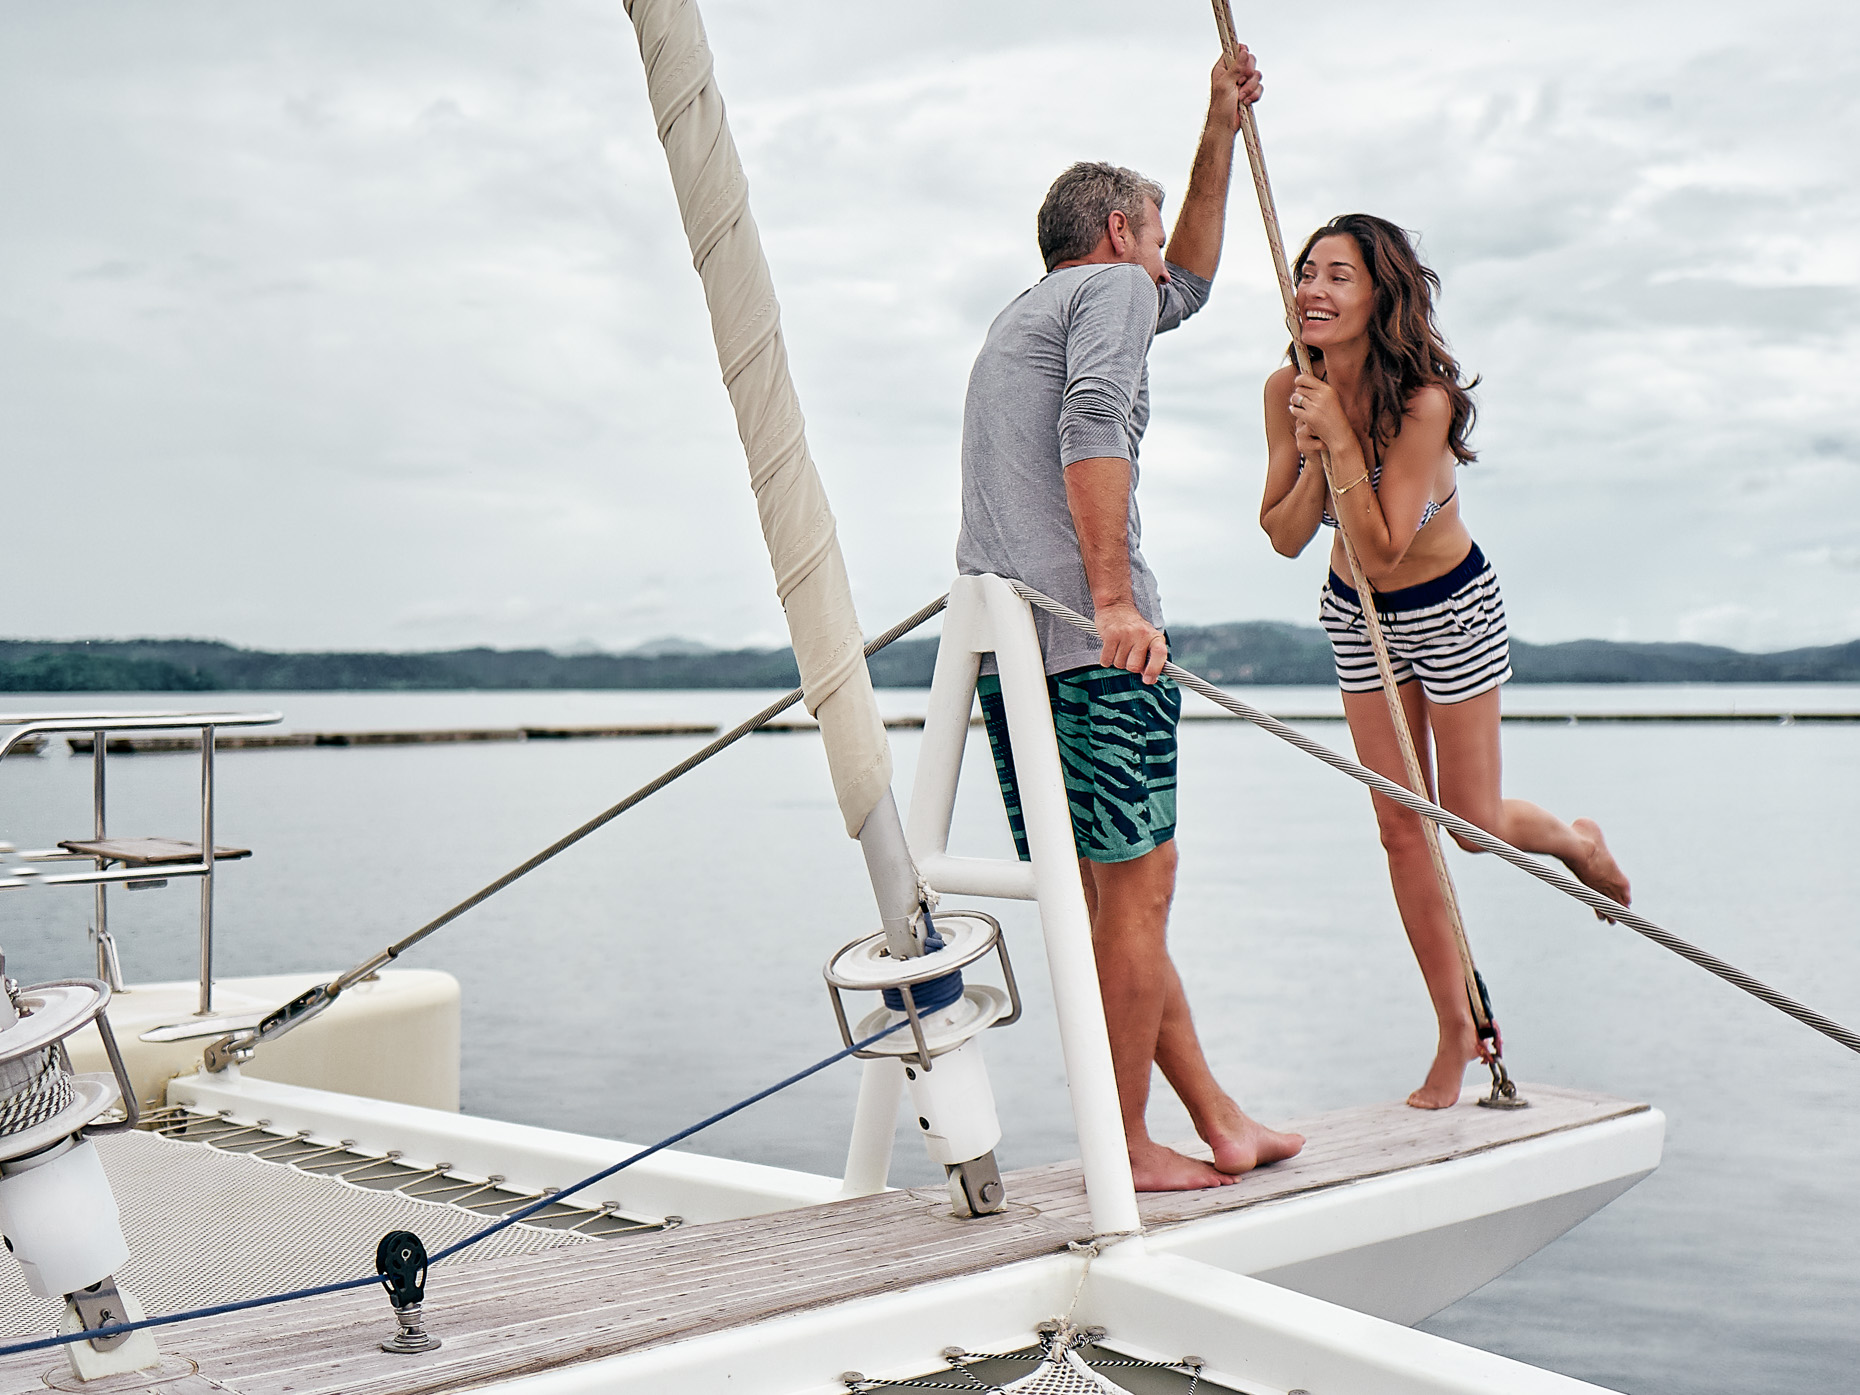 A couple on a catamaran having fun